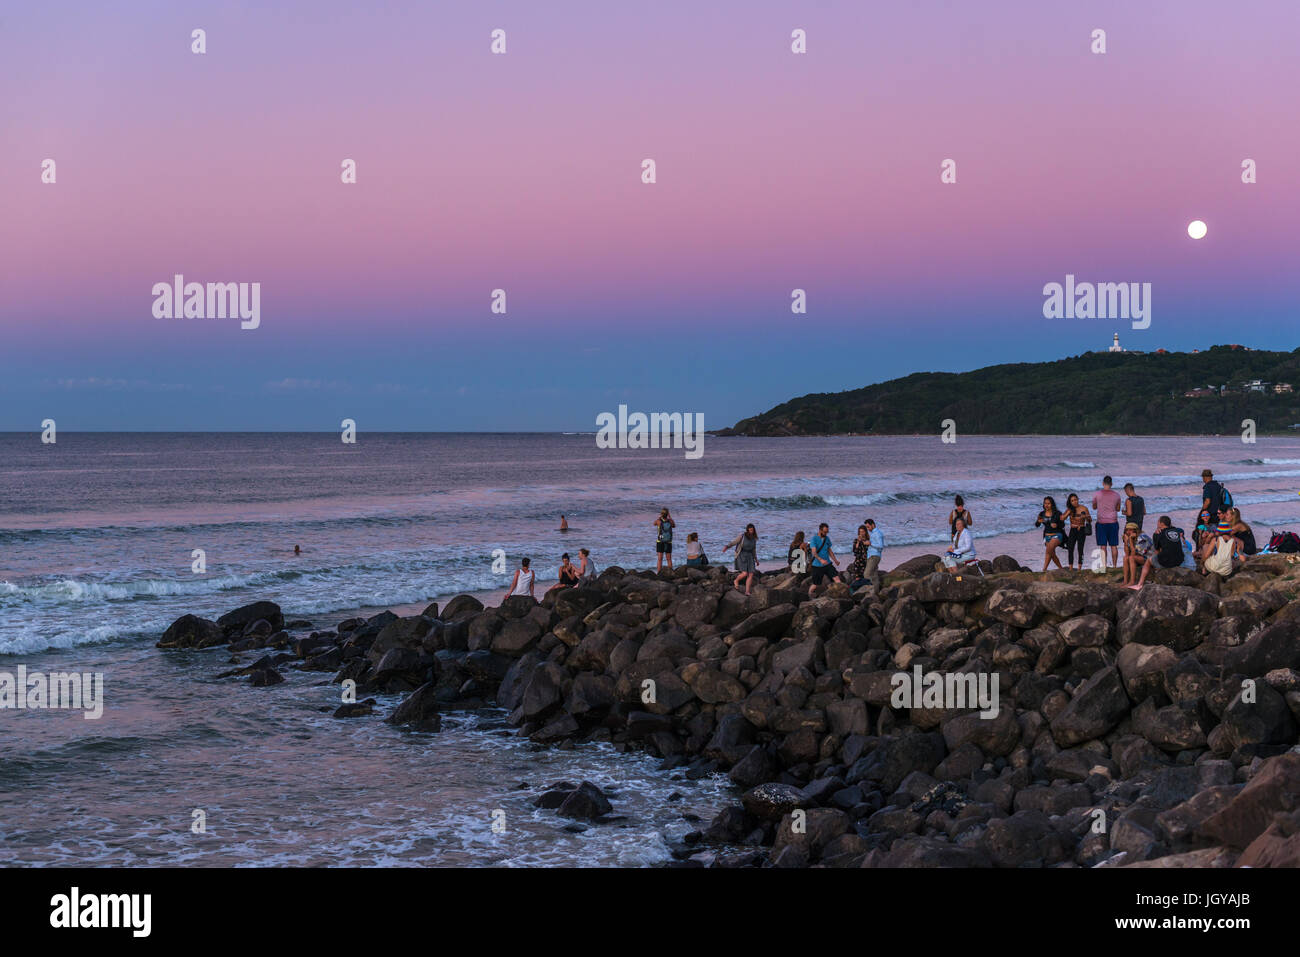 People watch the sun set and full moon rise at Byron bay, New South Wales, Australia. - Stock Image